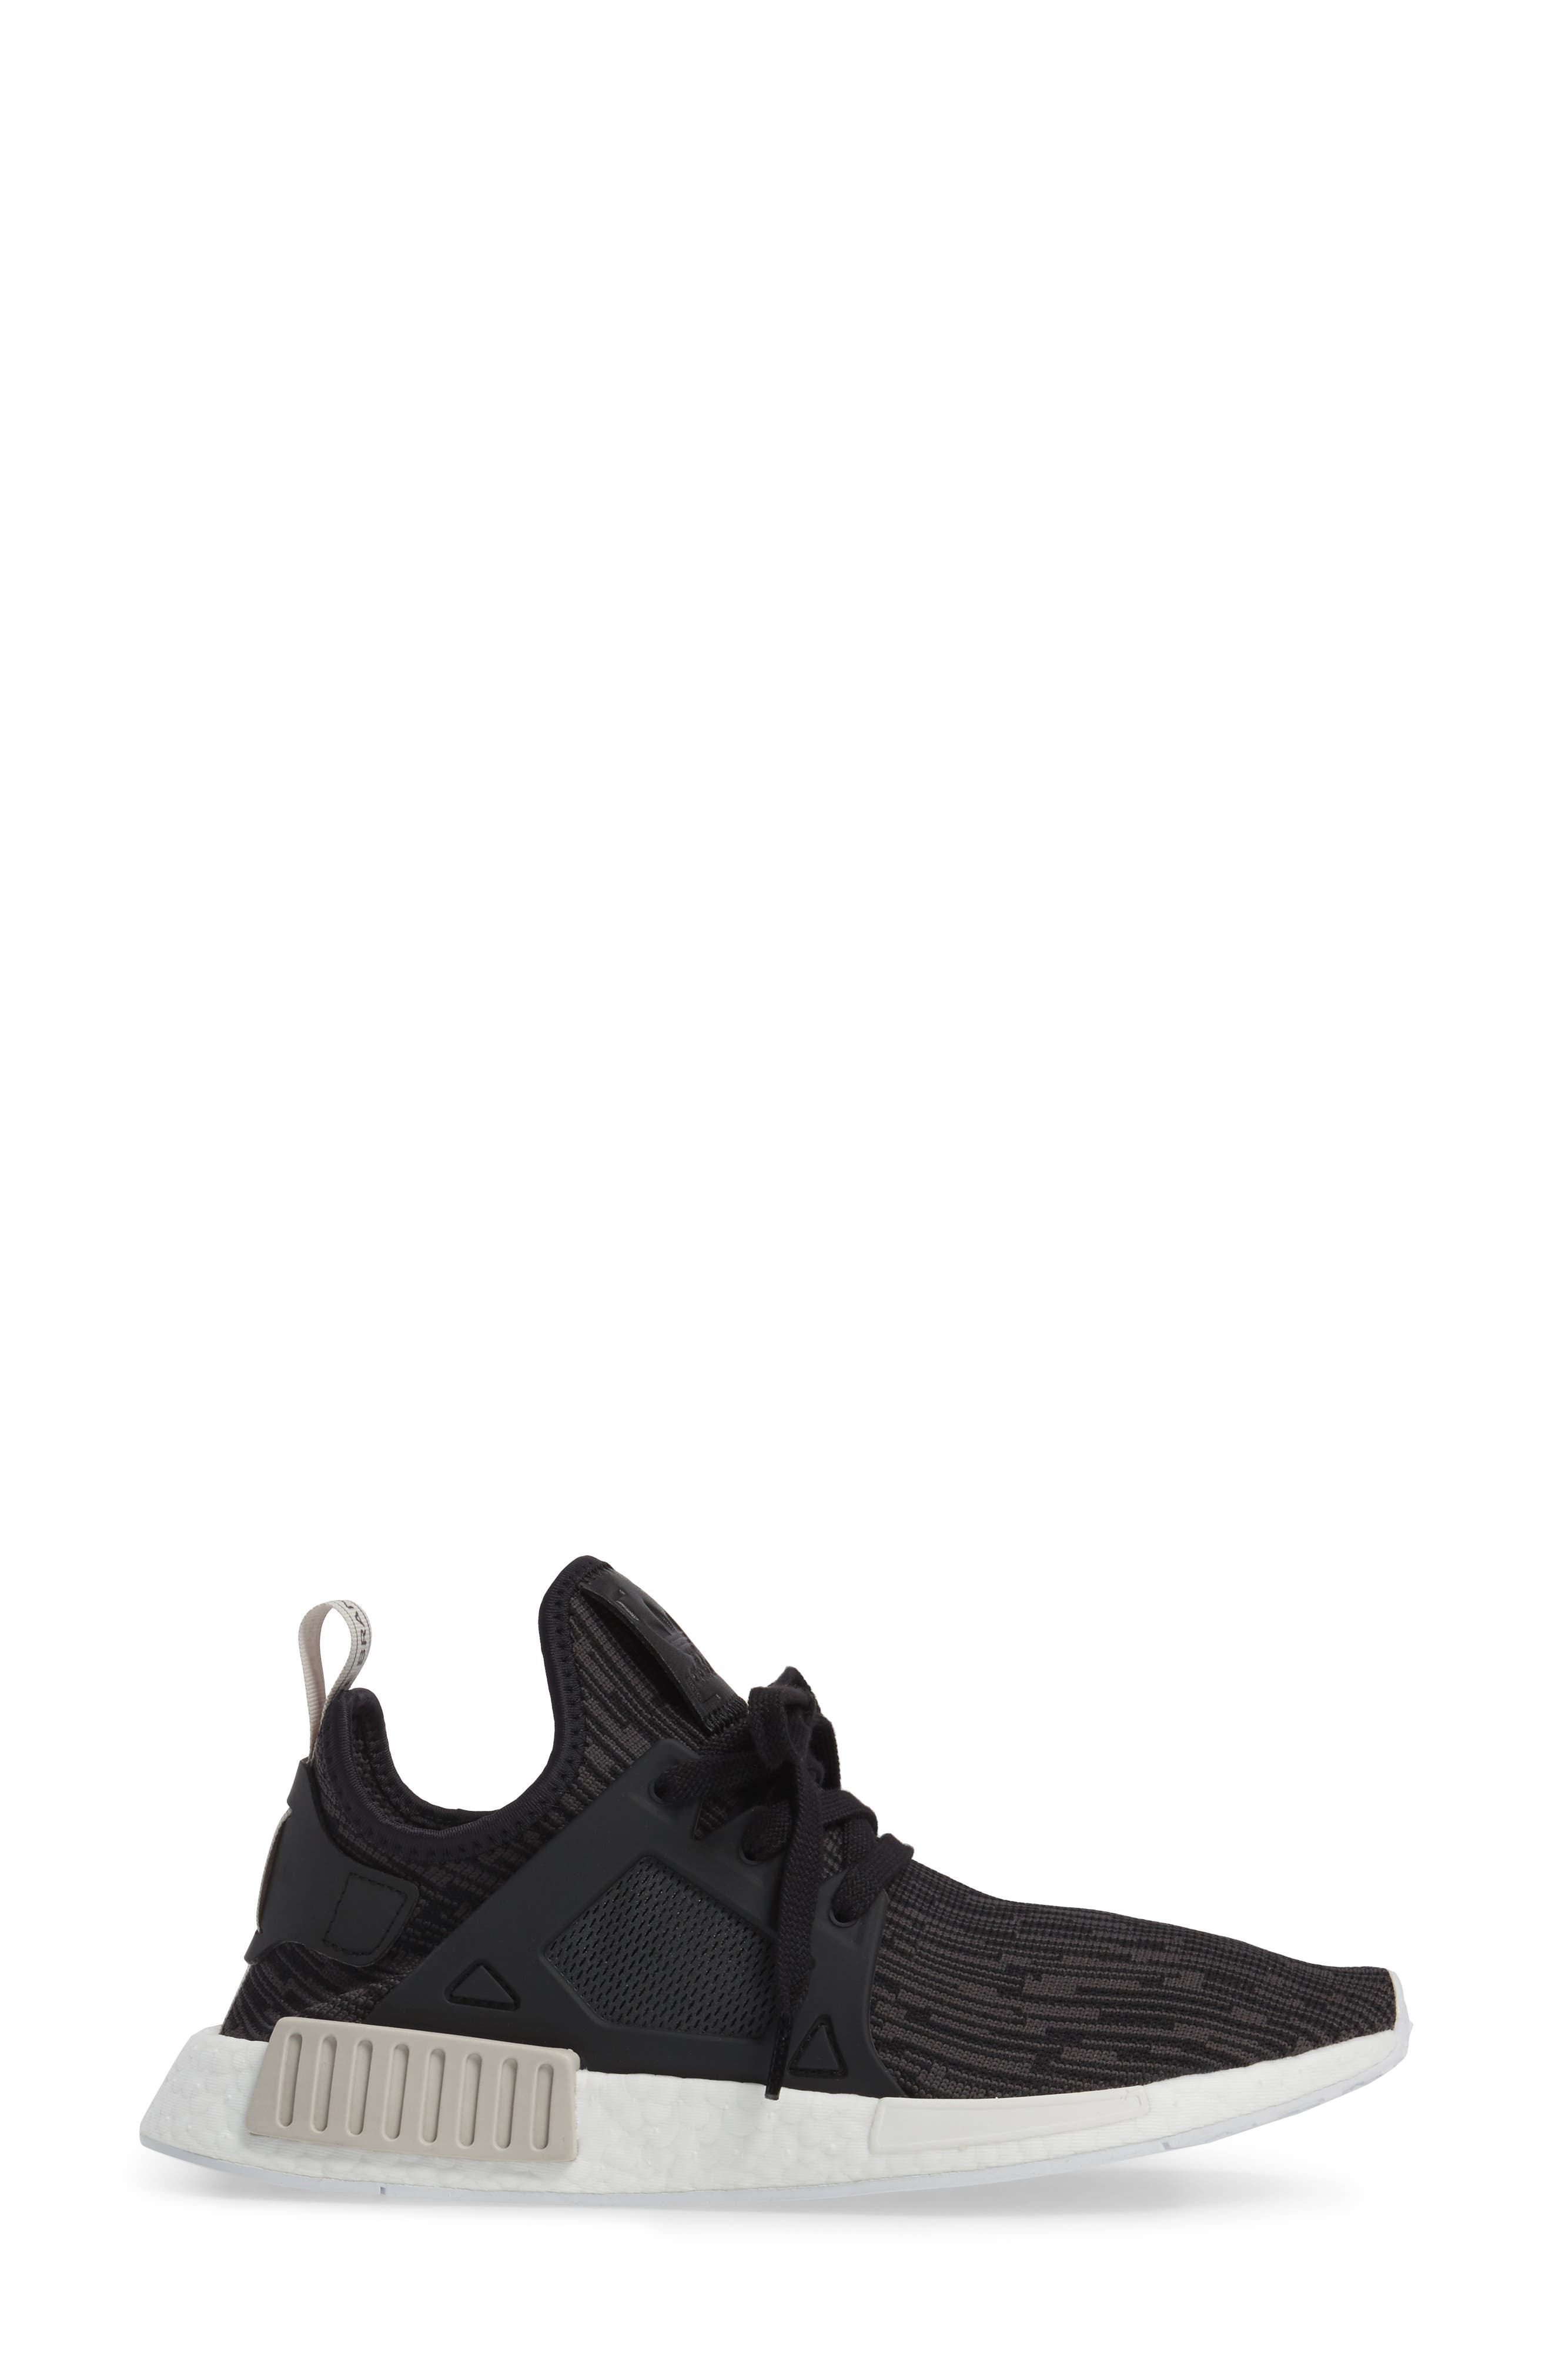 NMD XR1 Athletic Shoe,                             Alternate thumbnail 3, color,                             001